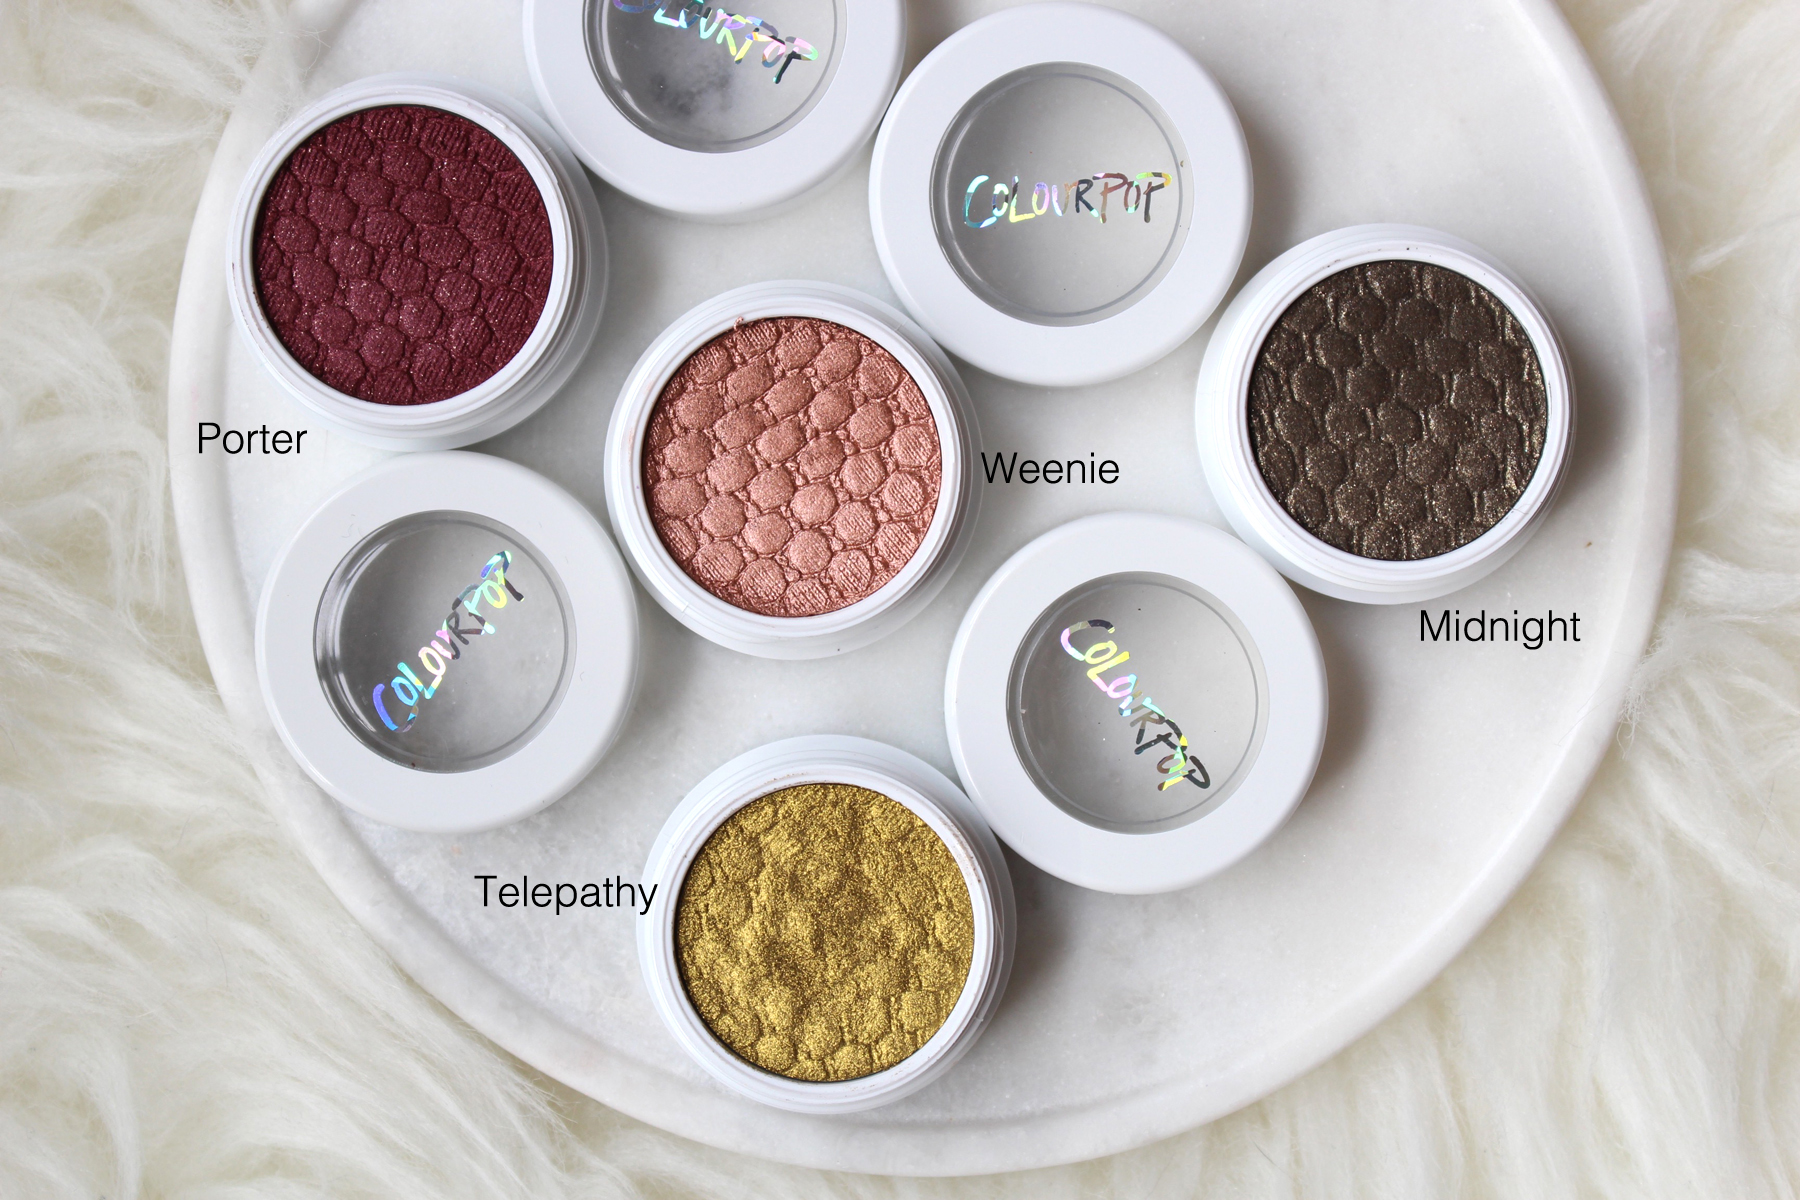 WoahStyle.com-Beauty Review-Colour Pop Cosmetics-Kathleen Lights_Where The Light Is eyeshadow quad-KathleenLights-YouTube-Vlogger-Channel-Color Swatches-Matte Liquid Lipstick-Lippie Stix Brink_3038.jpg